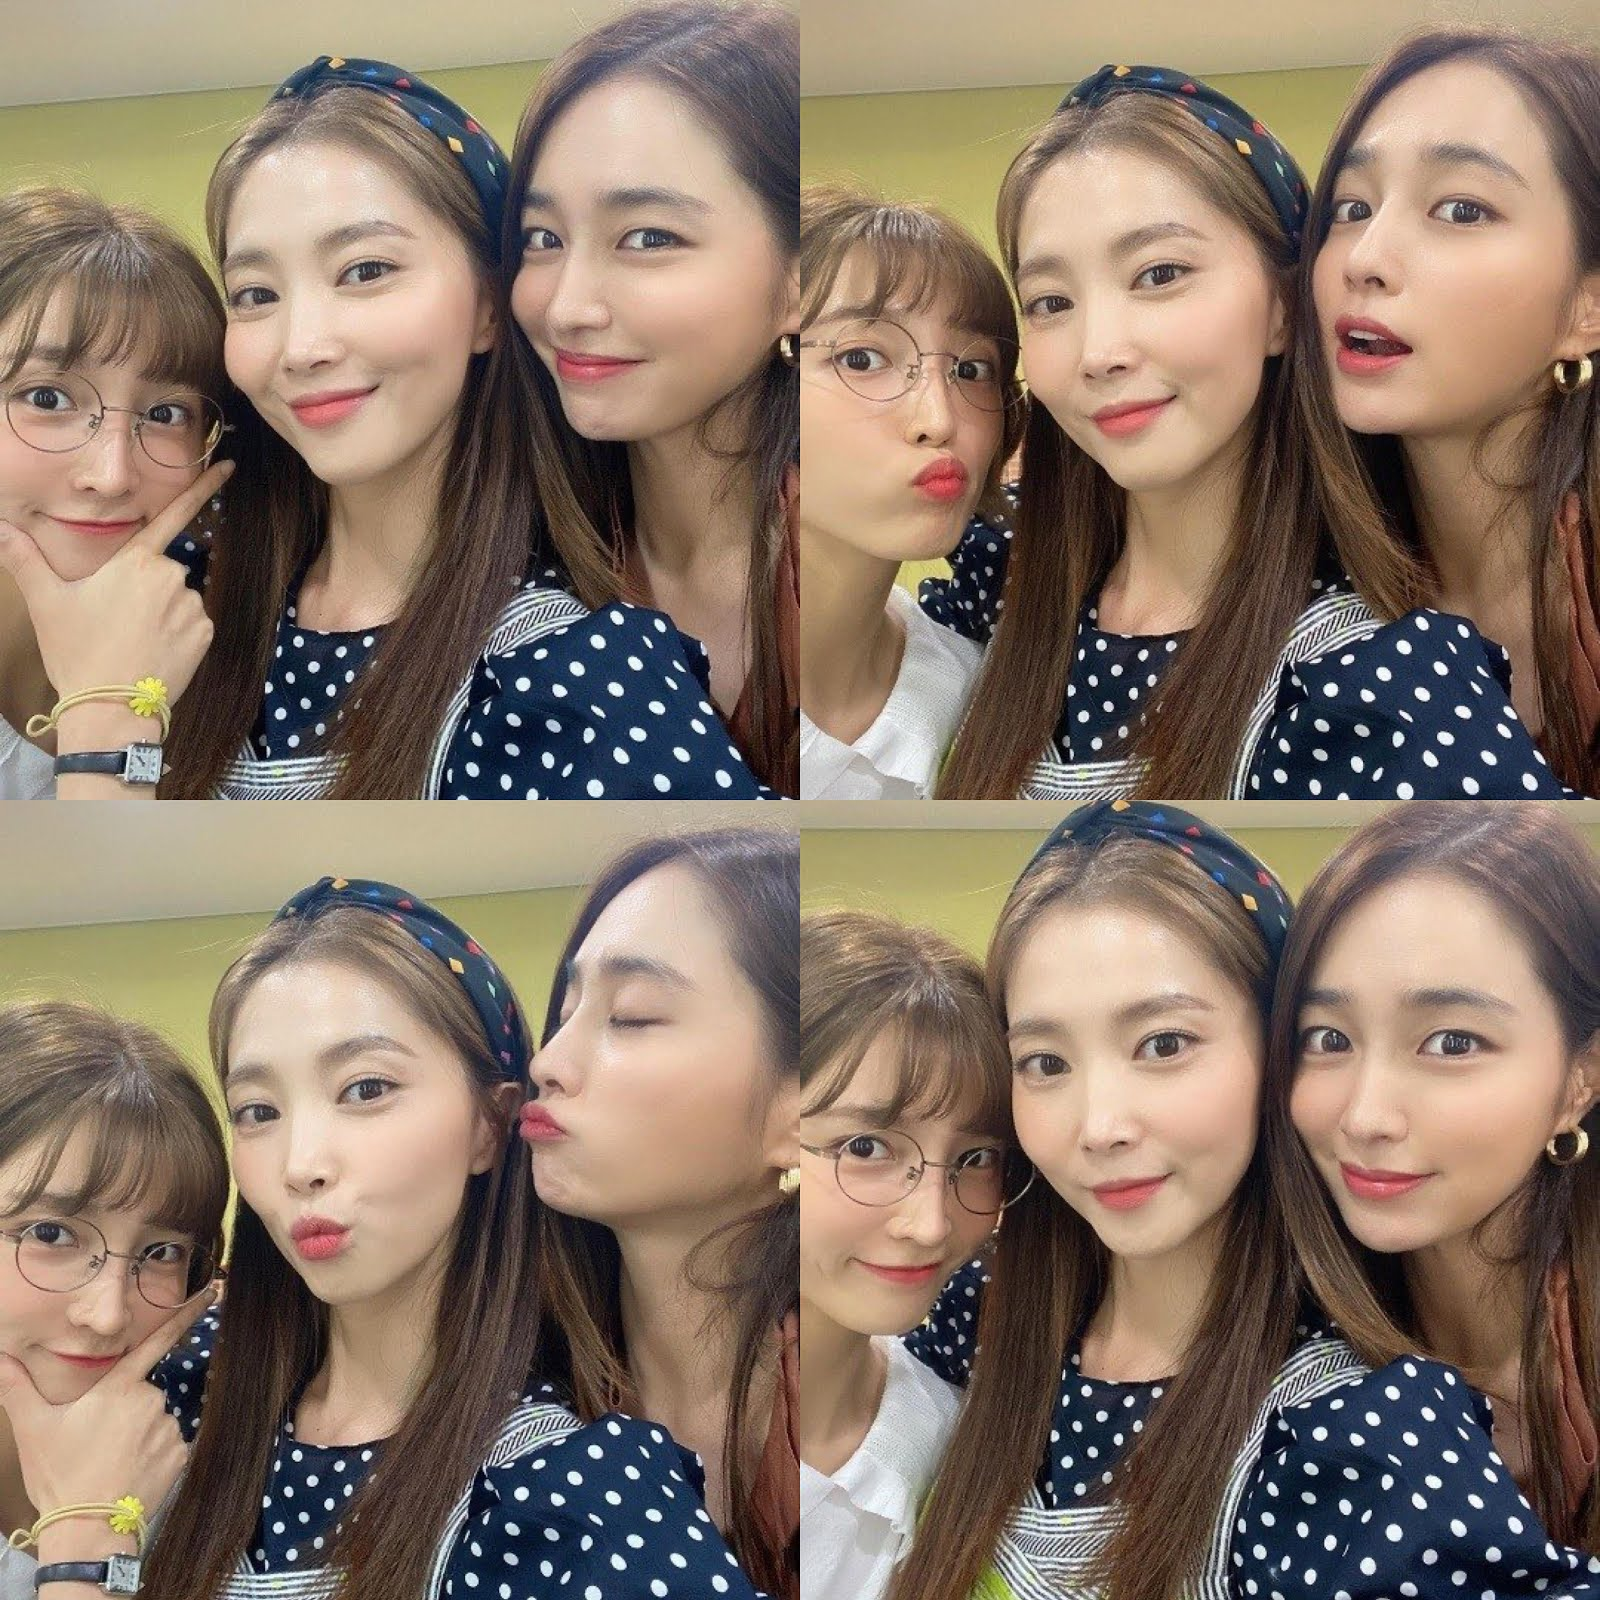 Oh Yoon Ah Expresses Her Love For Her Drama Sisters Lee Min Jung And Lee Cho Hee In Recent Selfies Ddoboja Blog Let S Watch It Again